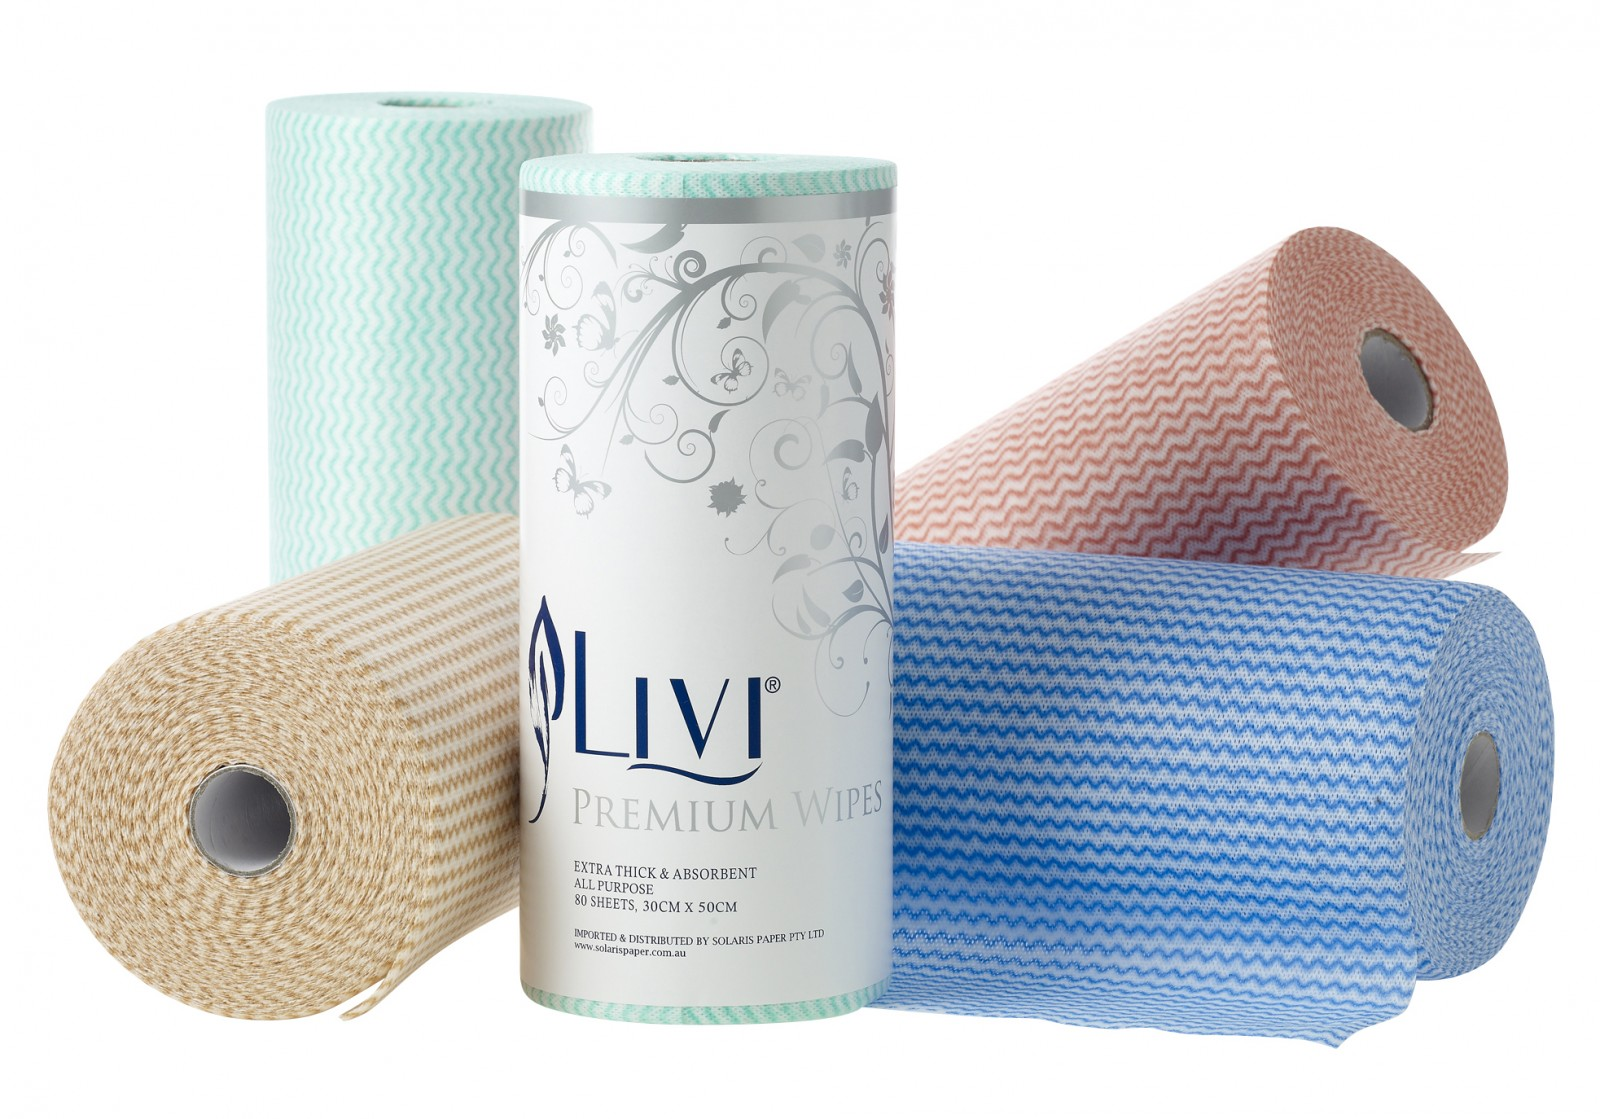 Livi Commercial Wipes